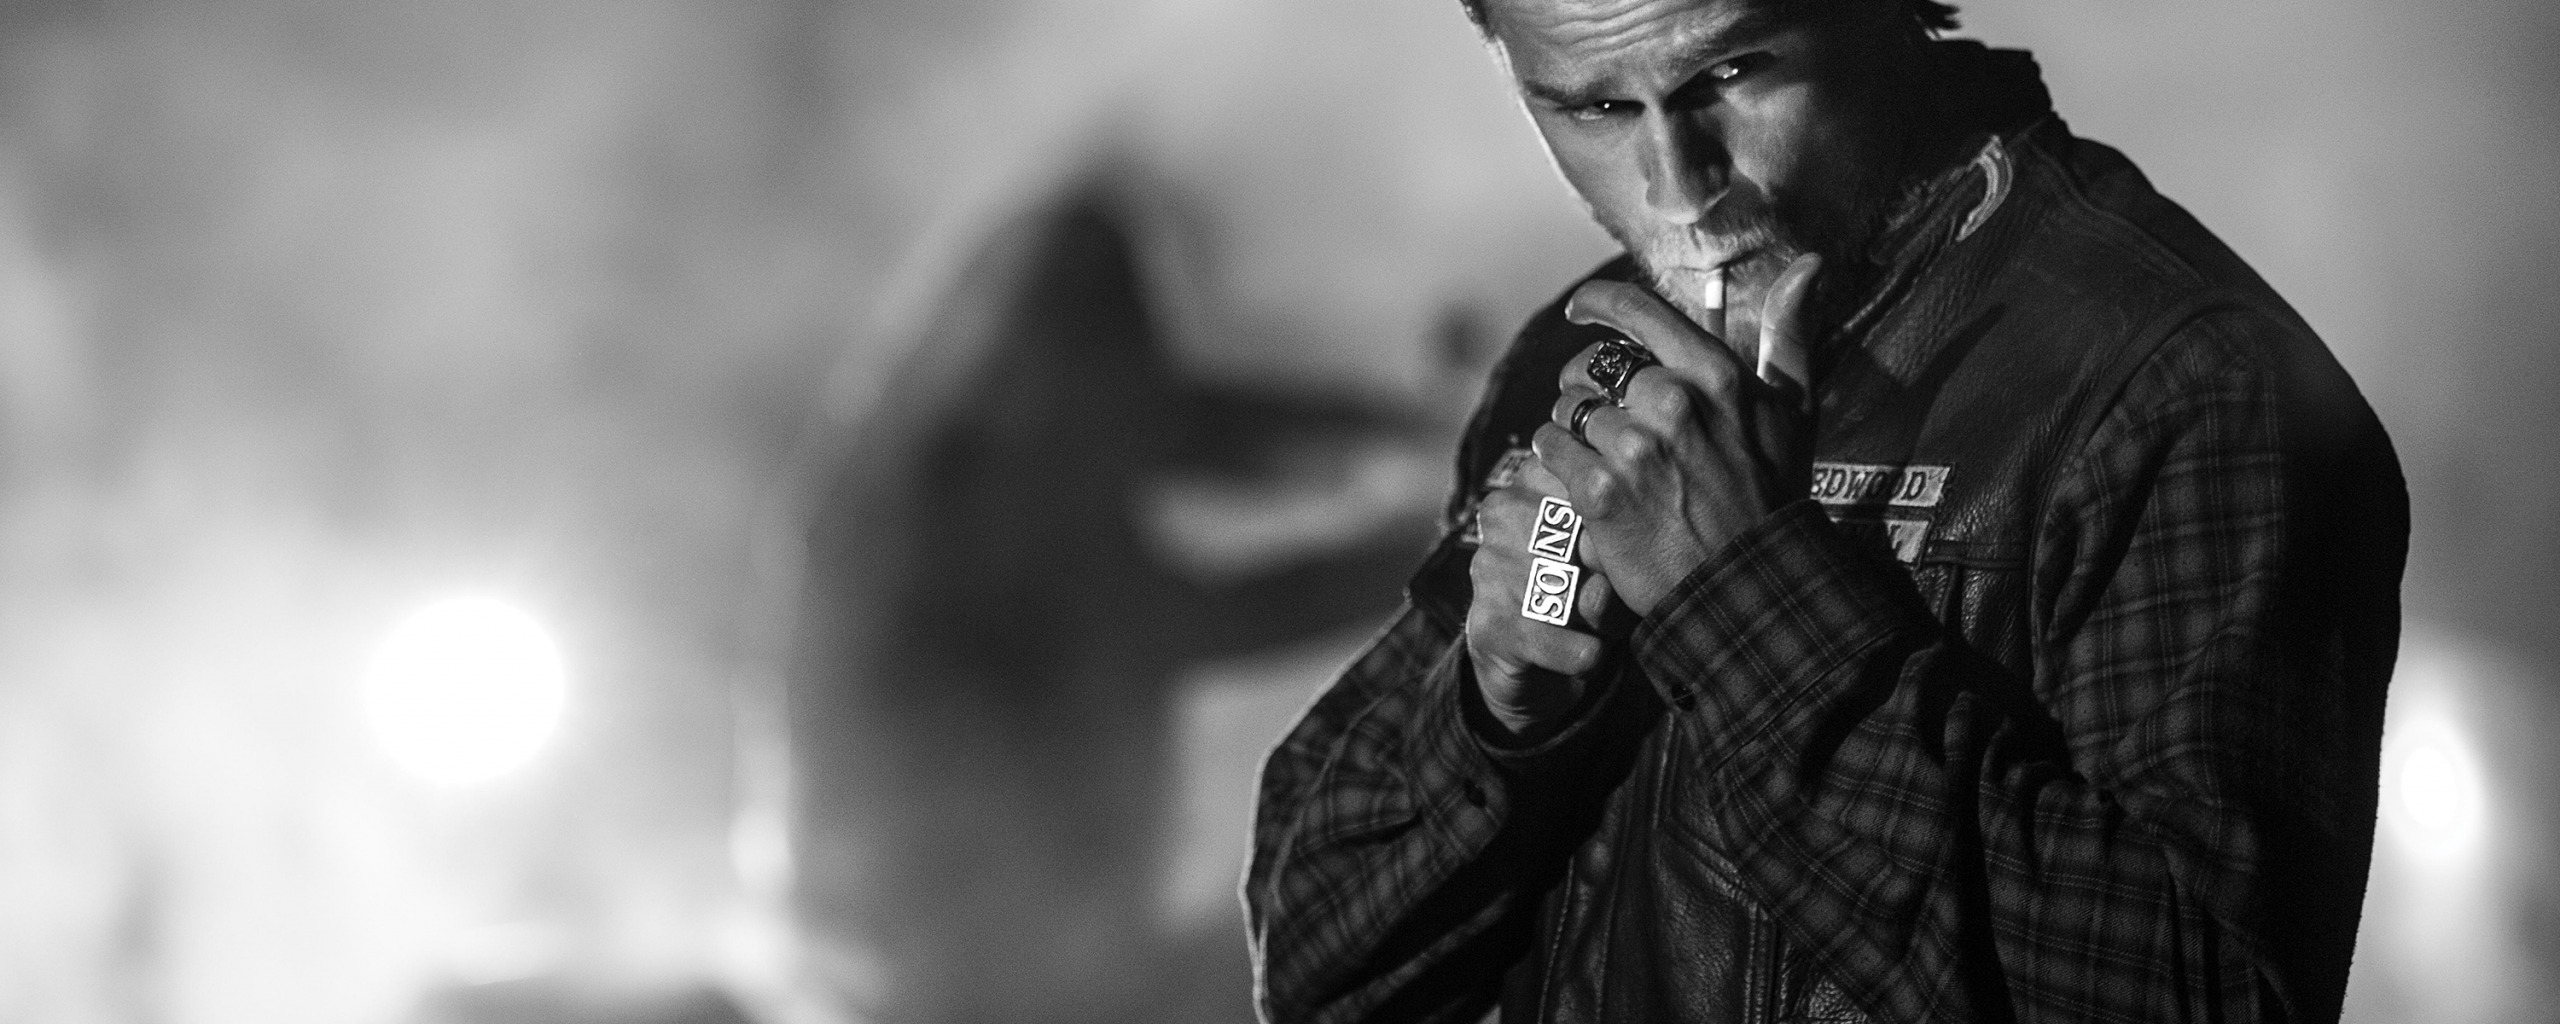 Sons Of Anarchy Imagines Masterlist Tumblr - #Summer